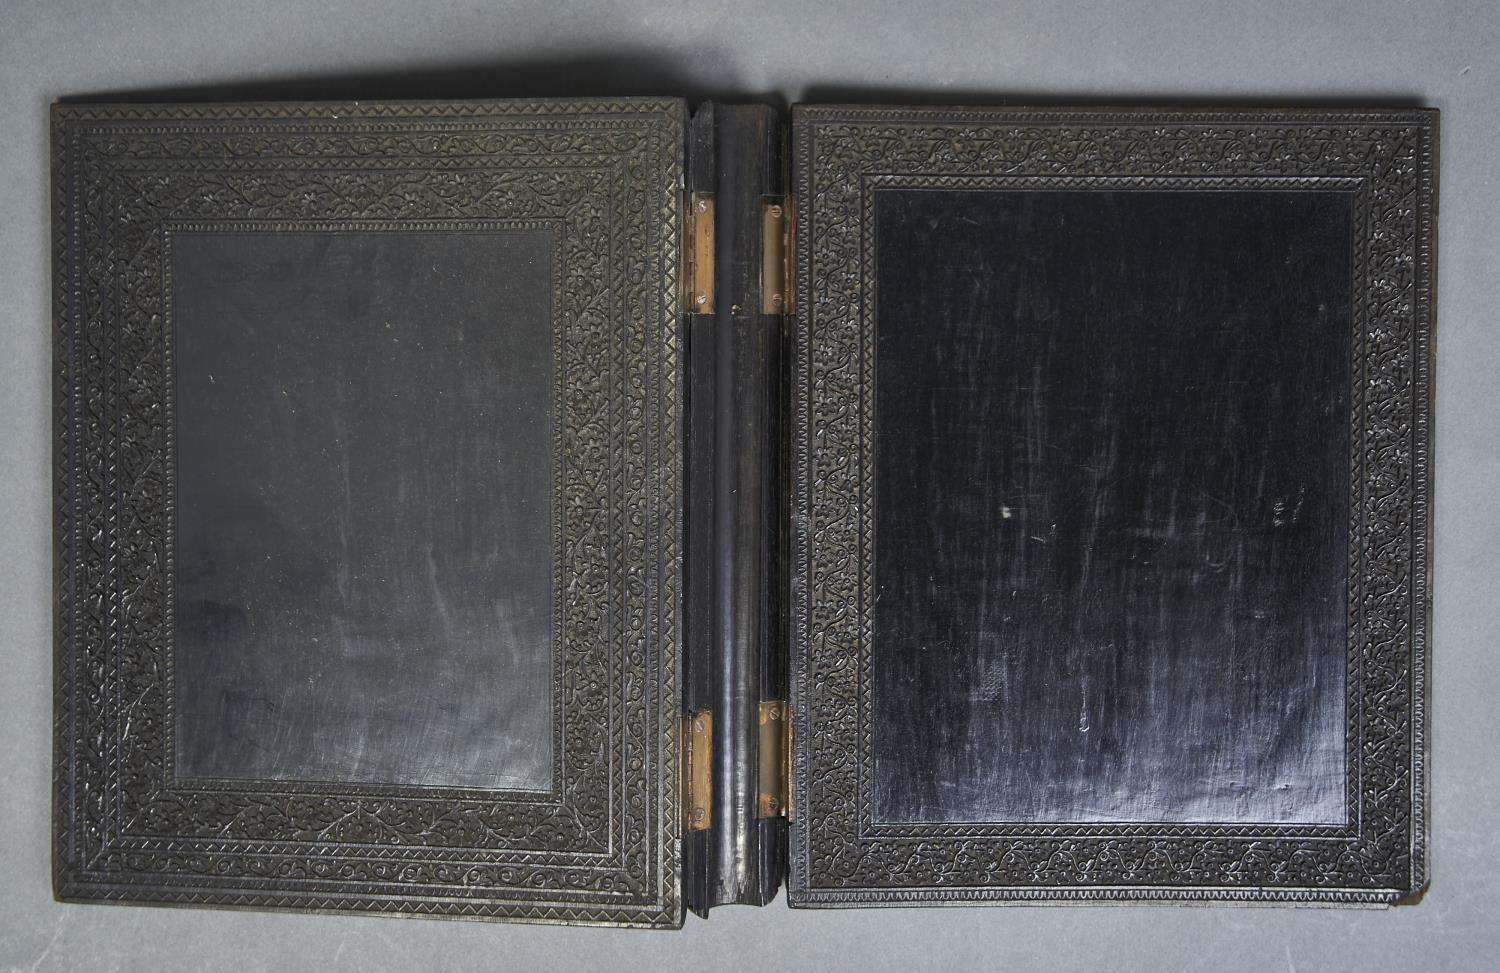 A CARVED EBONY BLOTTING BOOK, 19TH C,  WITH TENDRILS WITHIN CONFORMING FOLIATE PALMETTE BORDERS, - Image 2 of 2